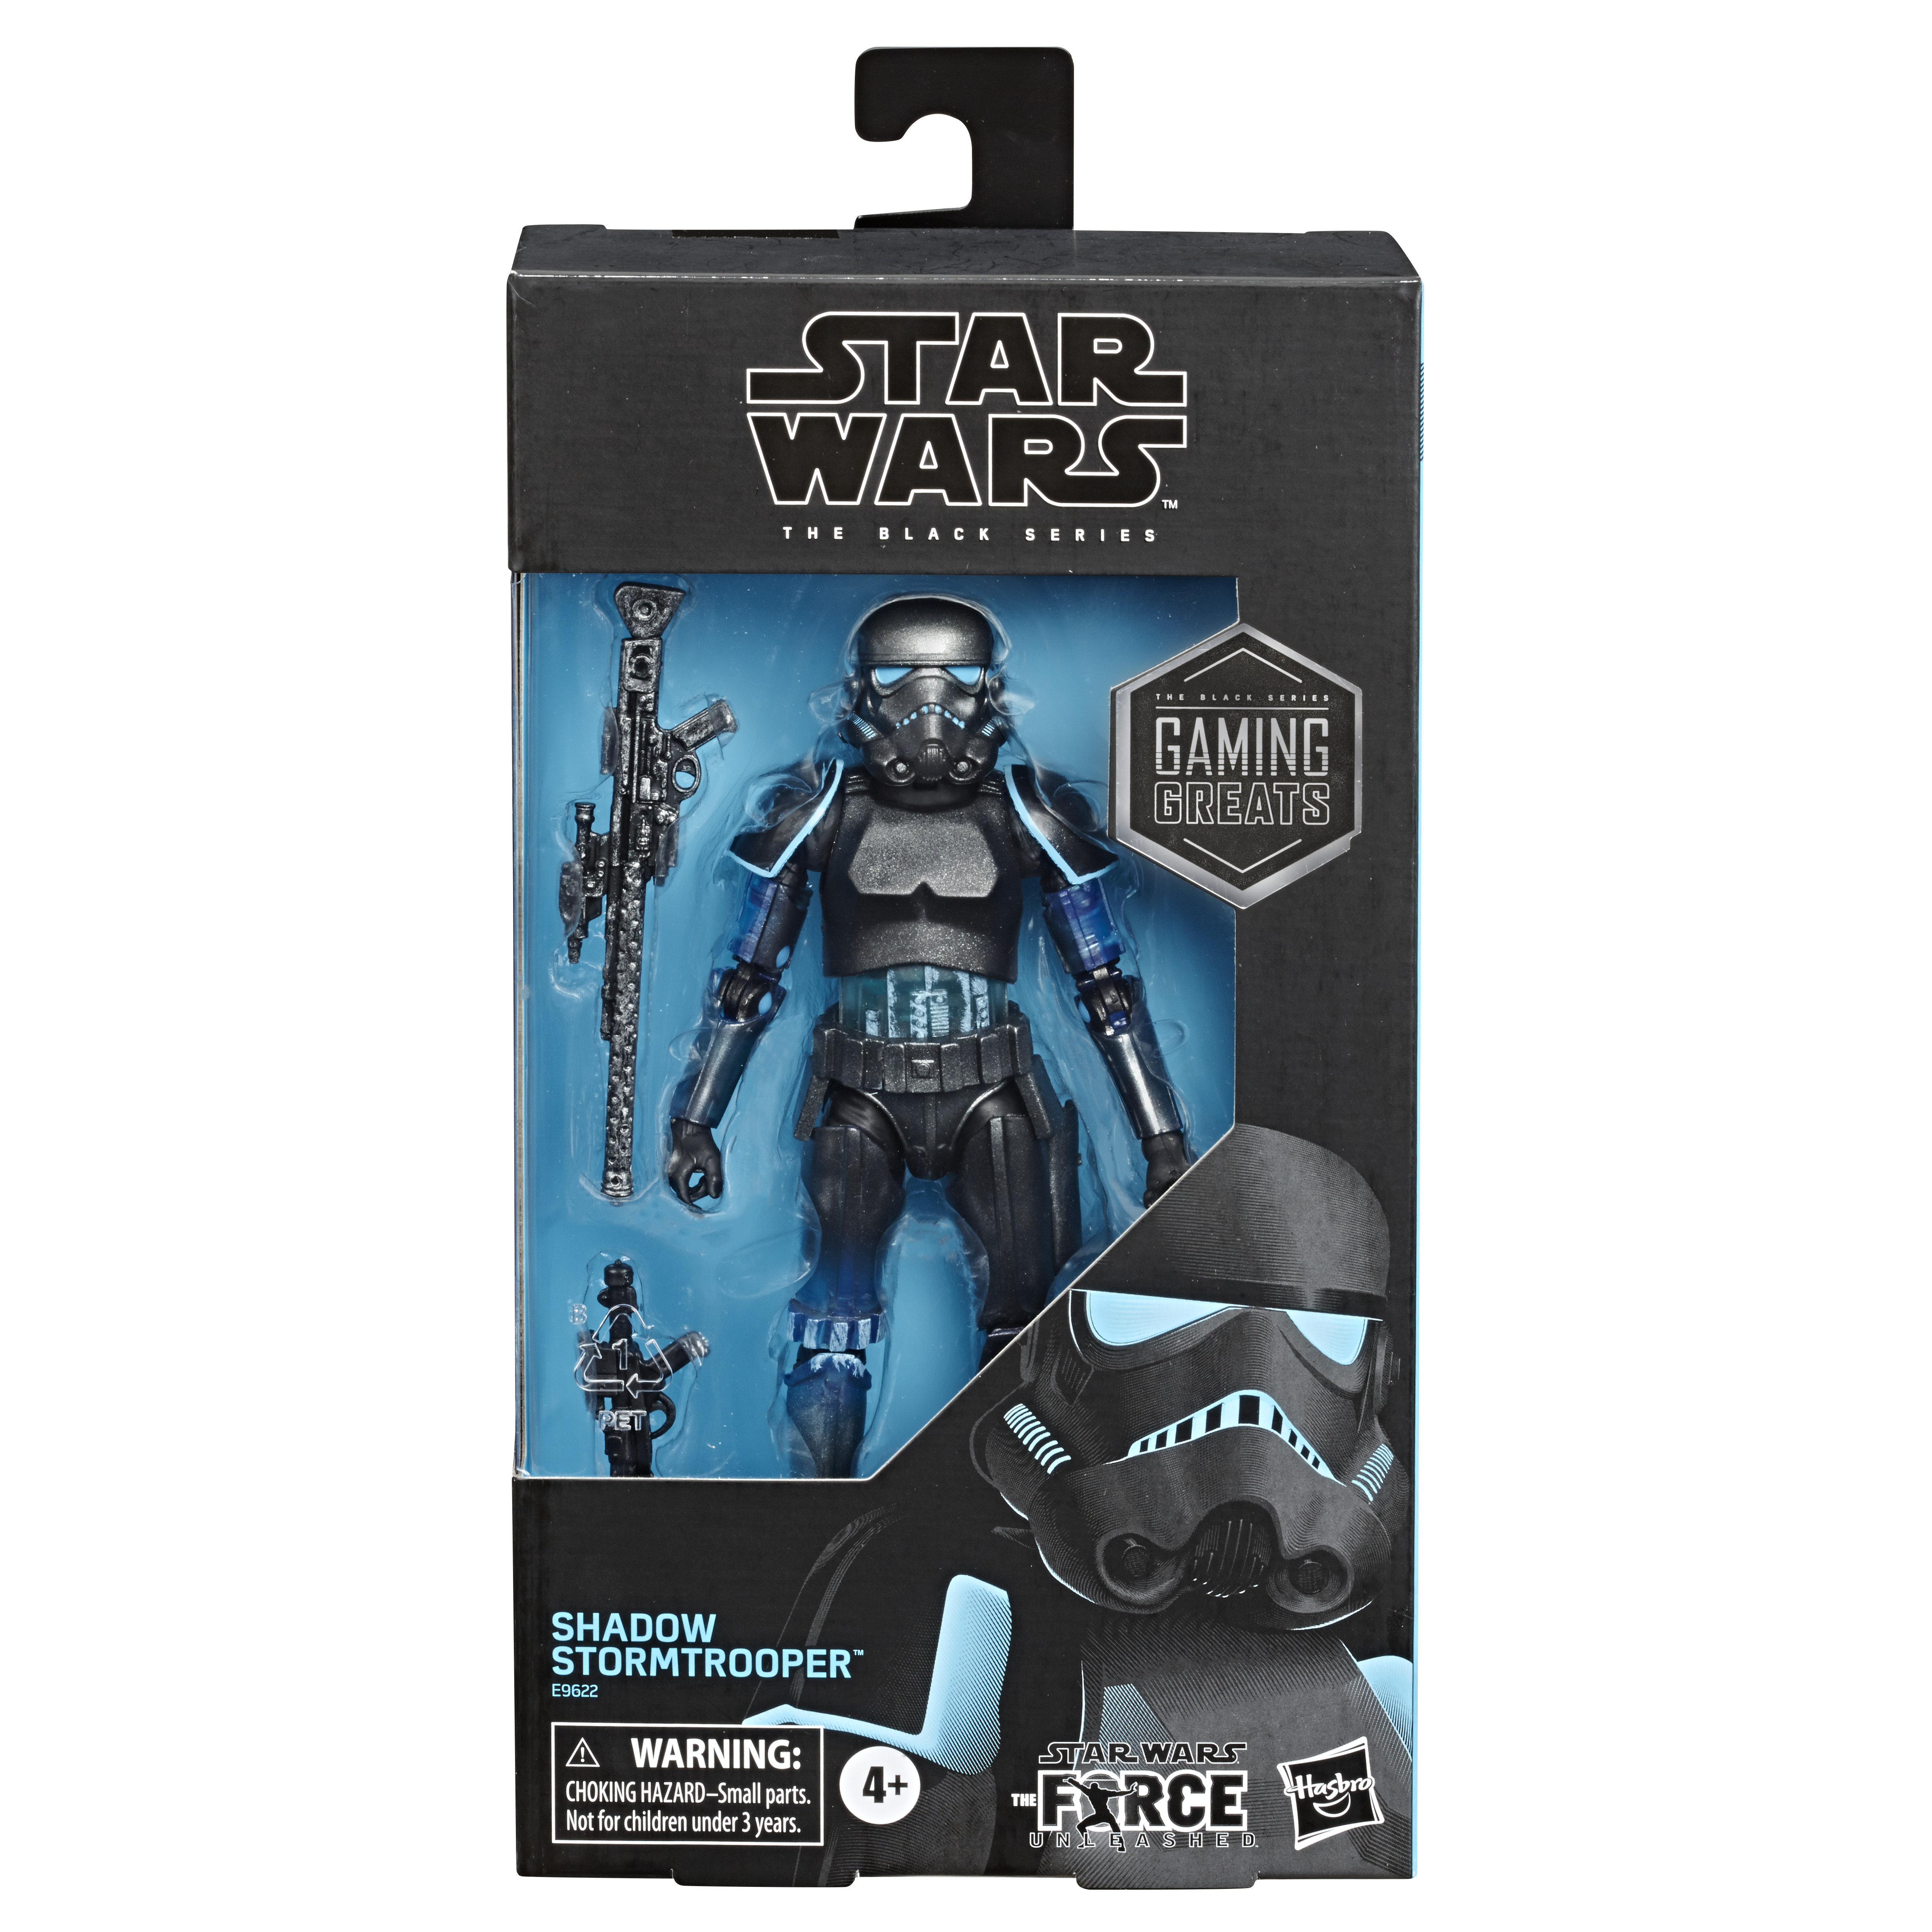 "Star Wars The Black Series Shadow Stormtrooper Action Figure 6"" Reihe E9622 5010993689620"